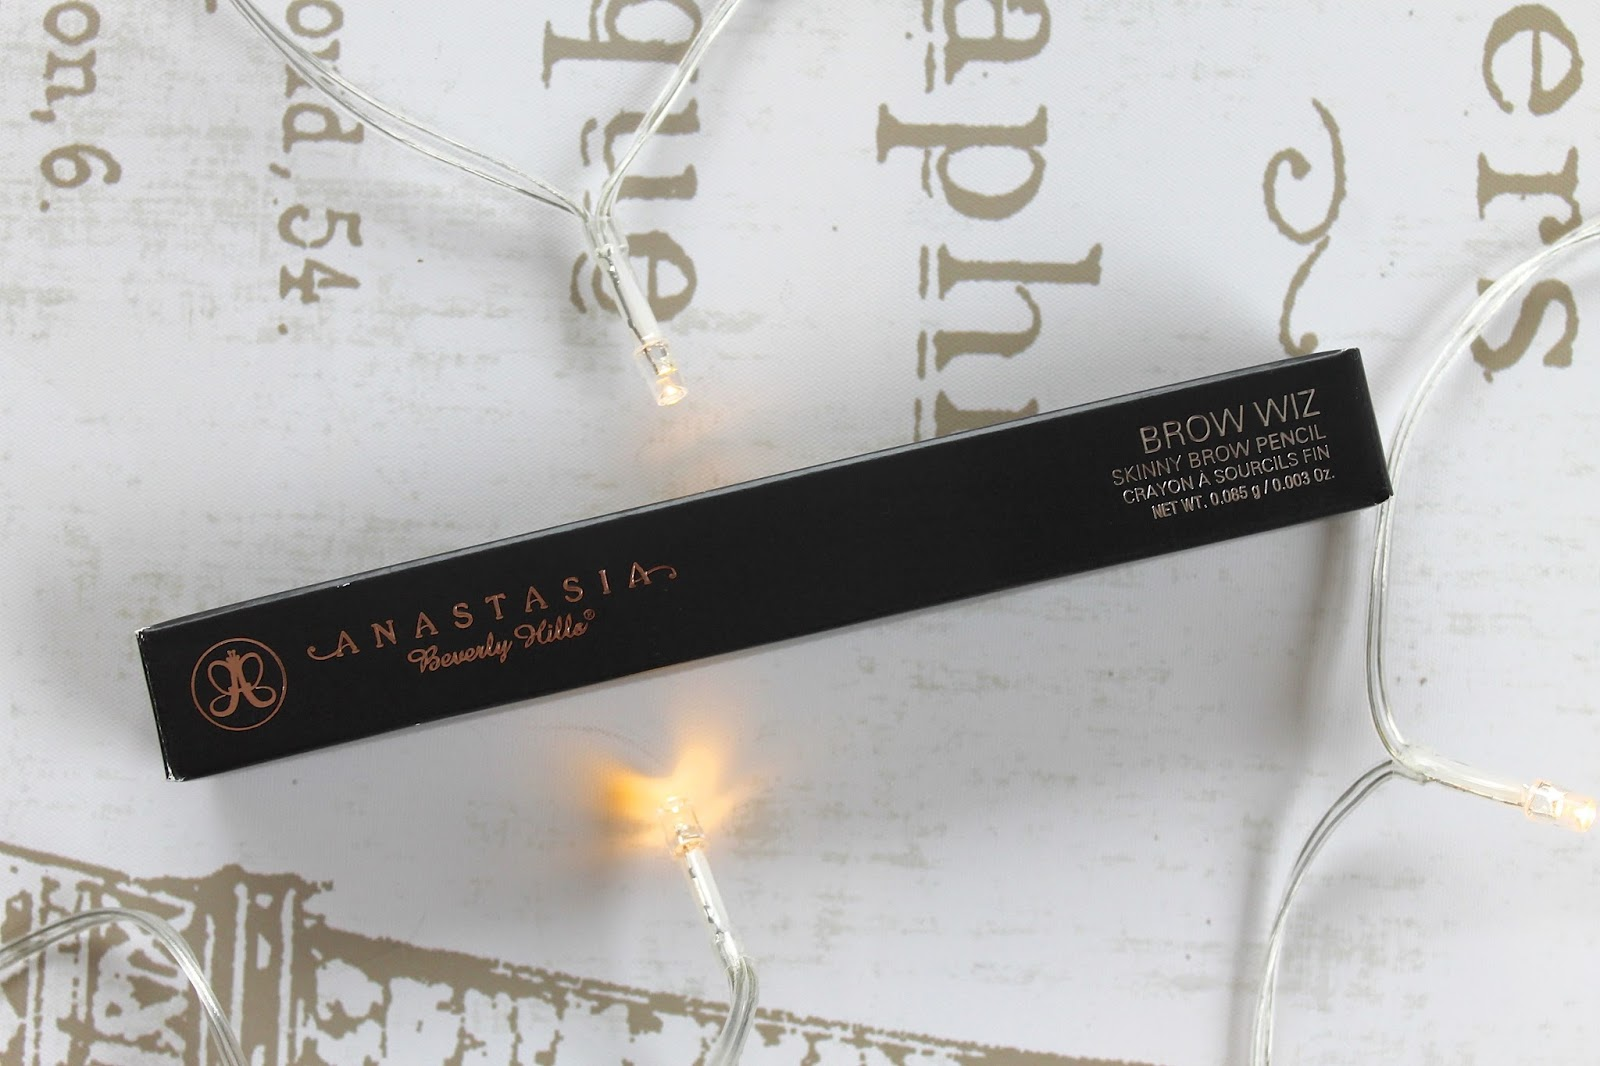 anastasia brow wiz blog review